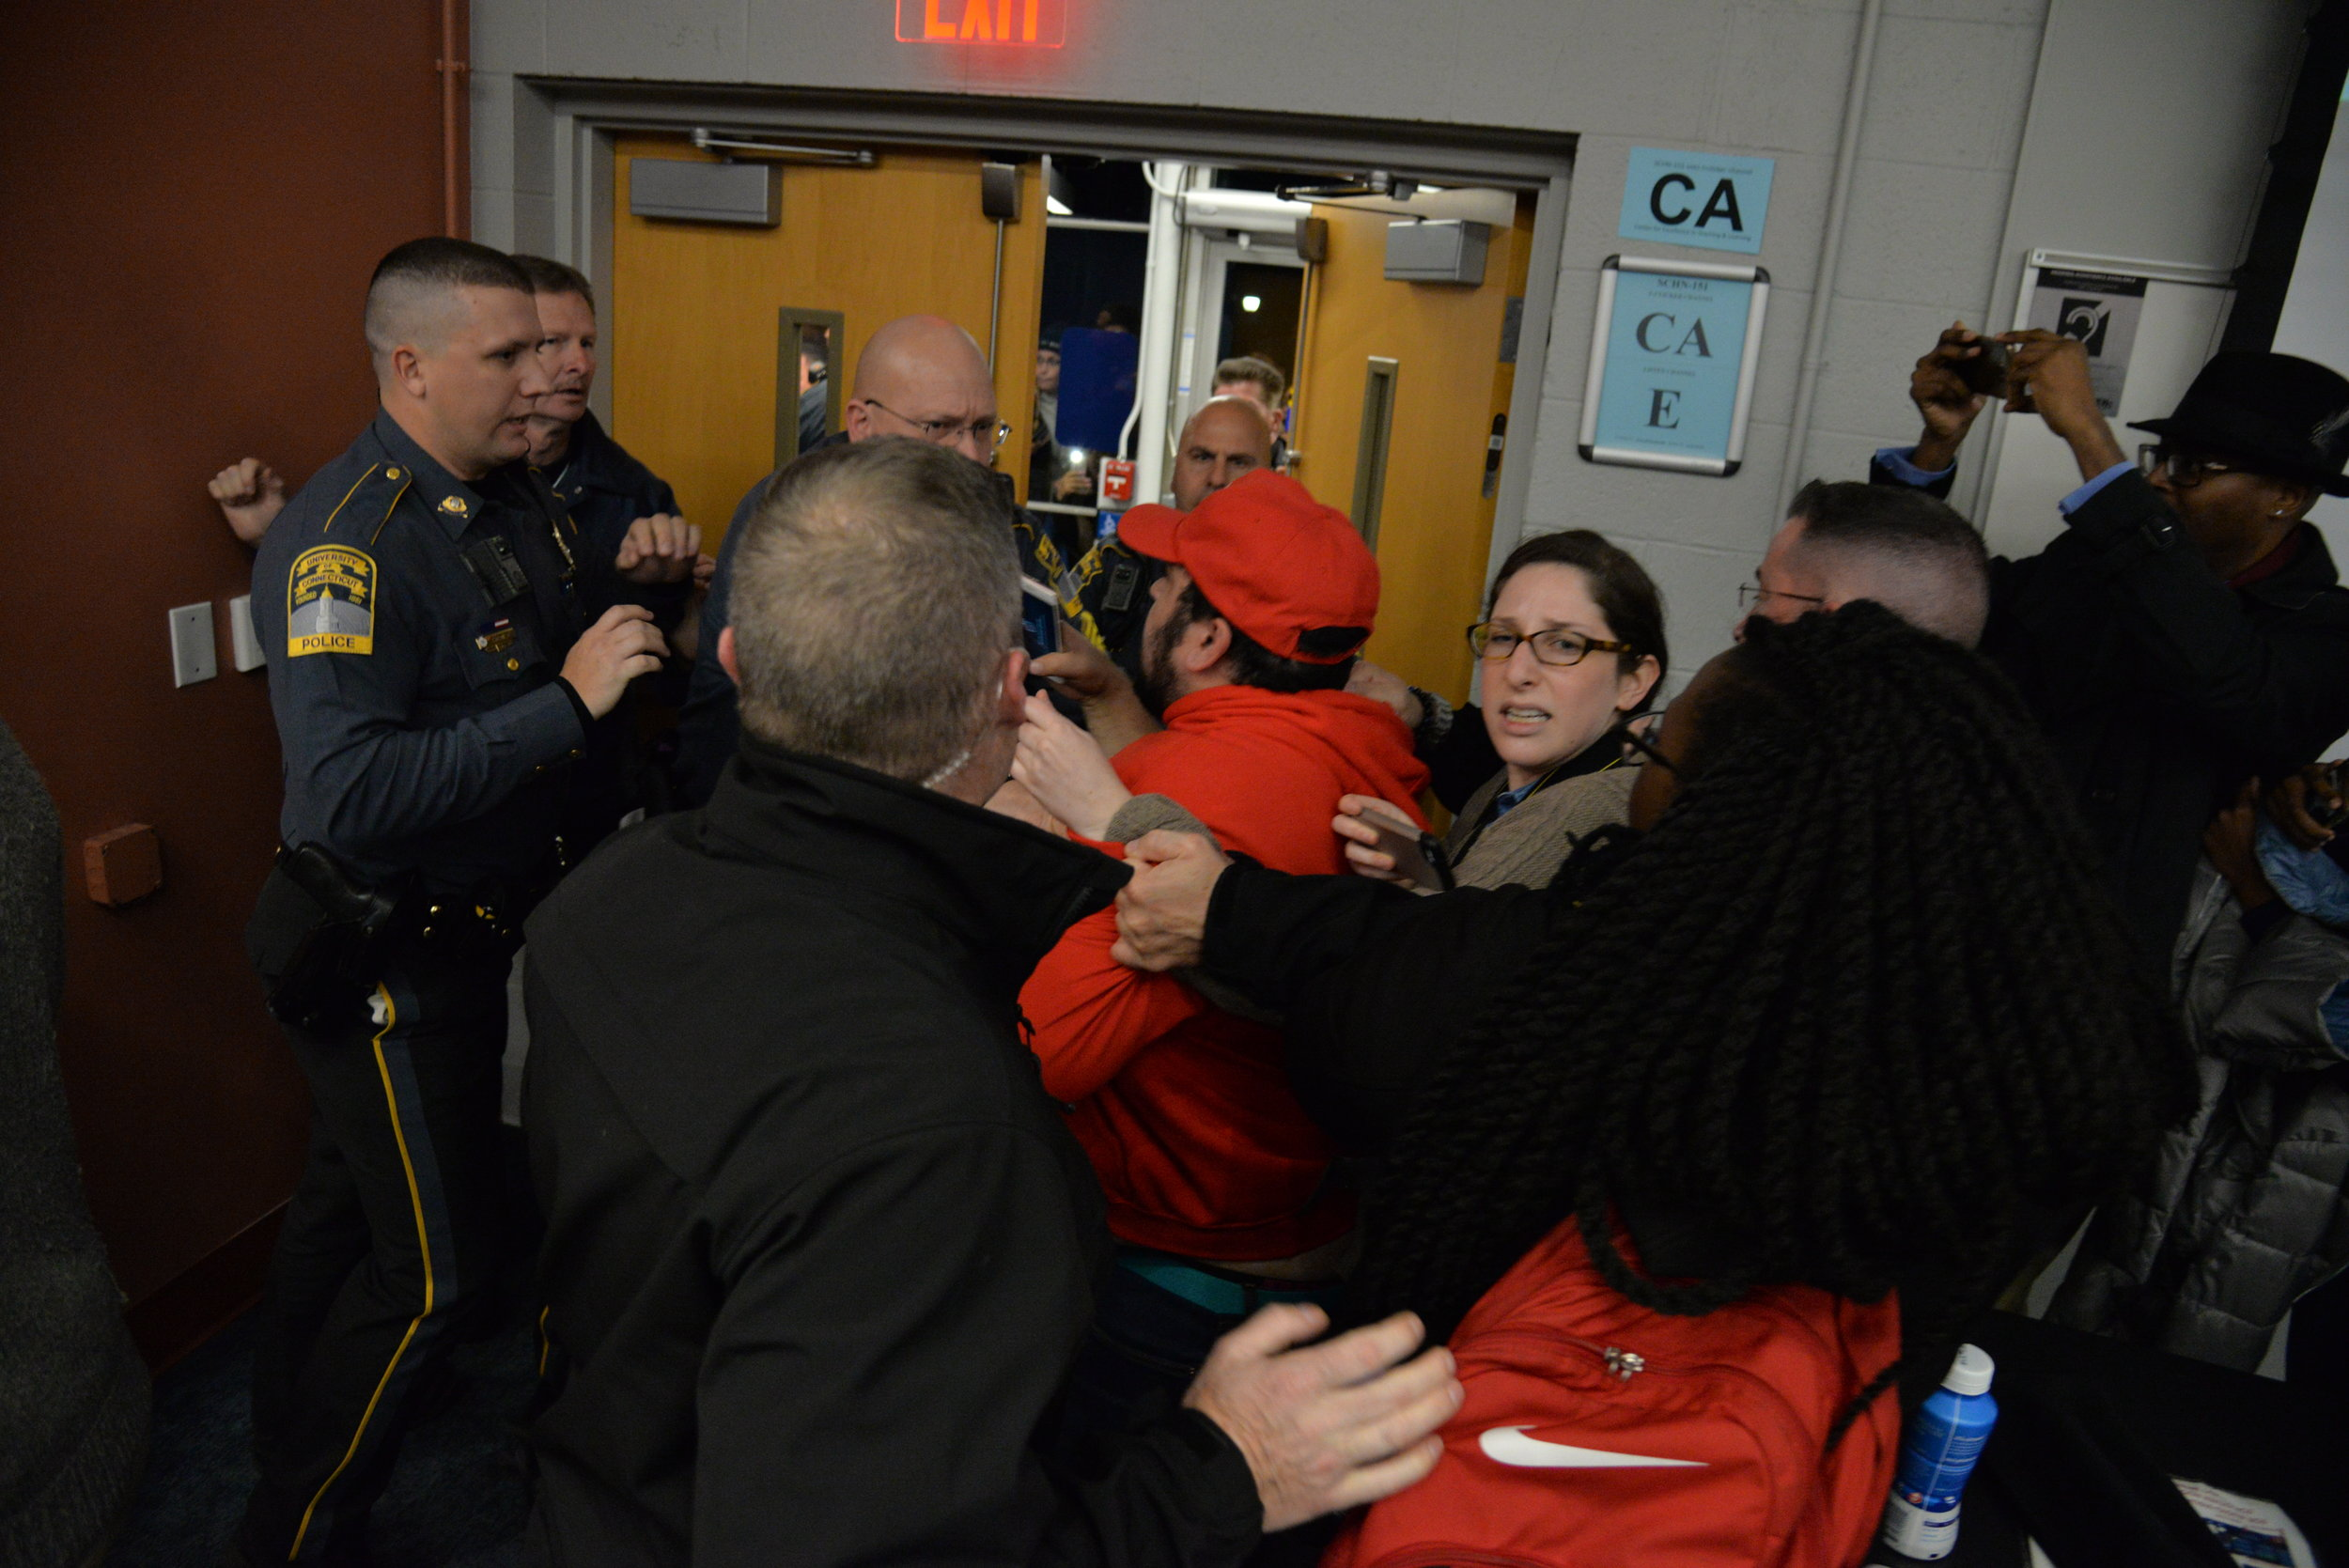 UCPD officers quickly escorted Wintrich through a scrum of people and out of the lecture hall. (Amar Batra/The Daily Campus)